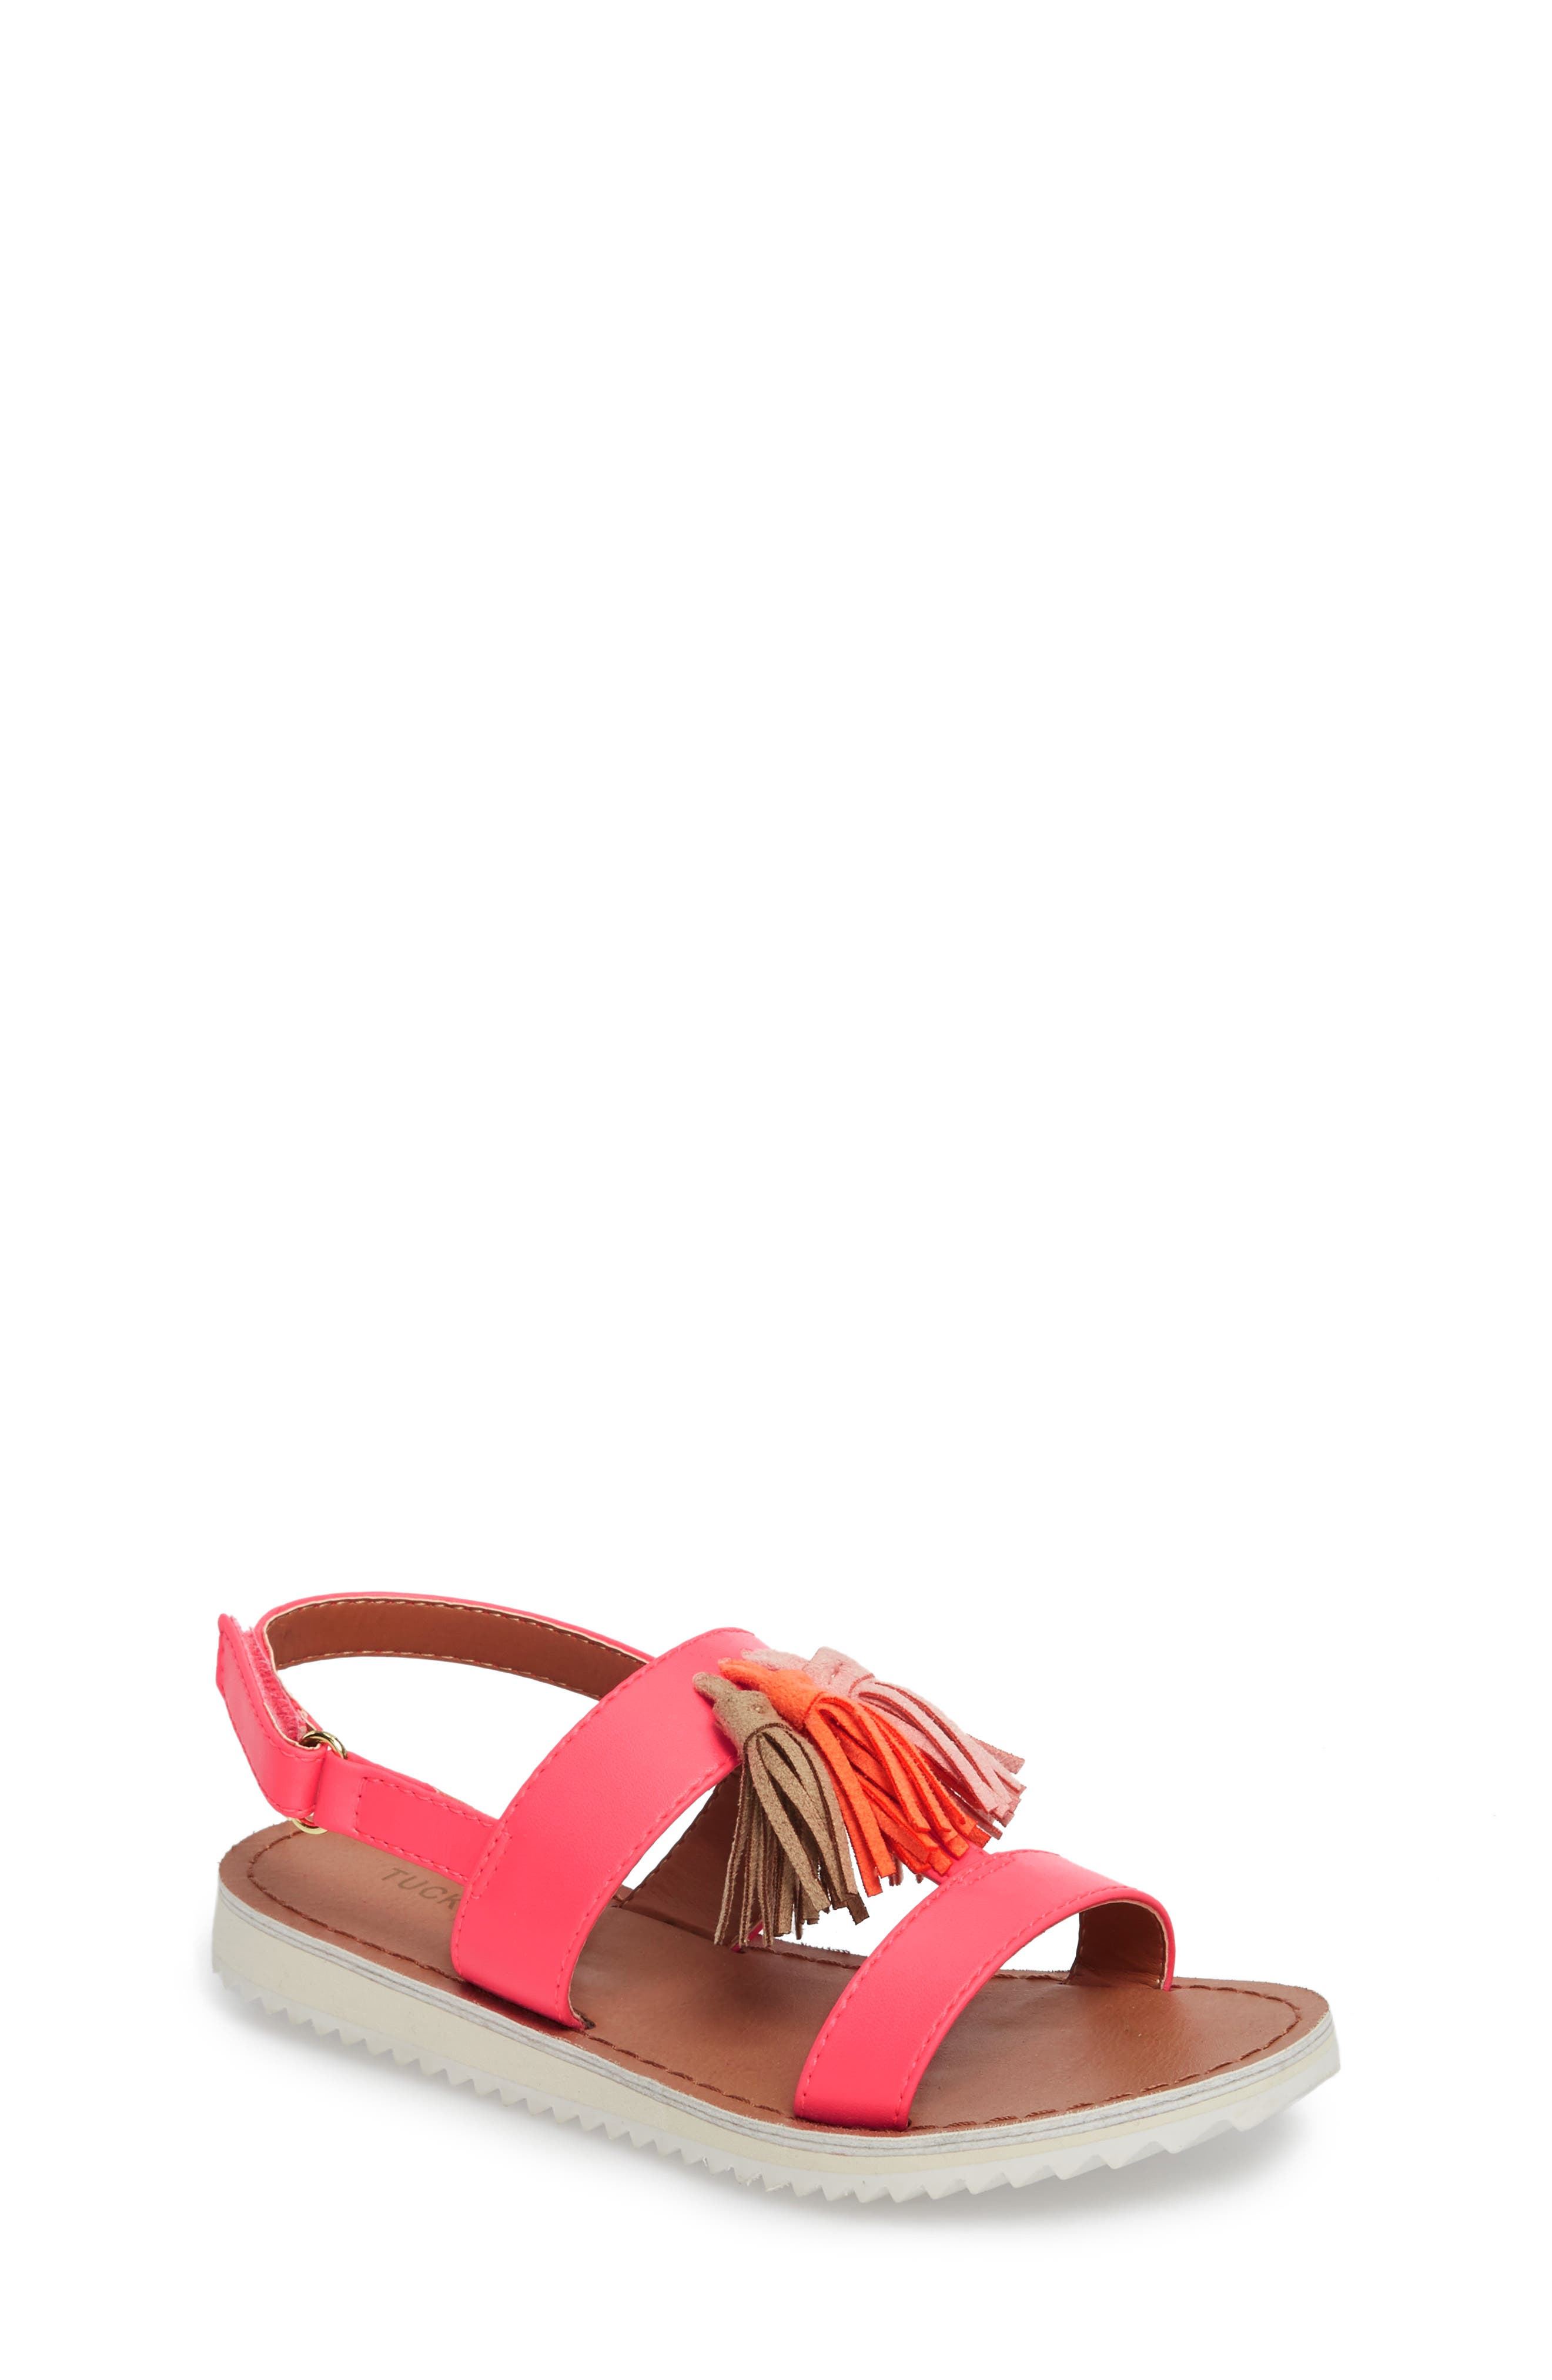 Mari Tasseled Sandal,                         Main,                         color, 690